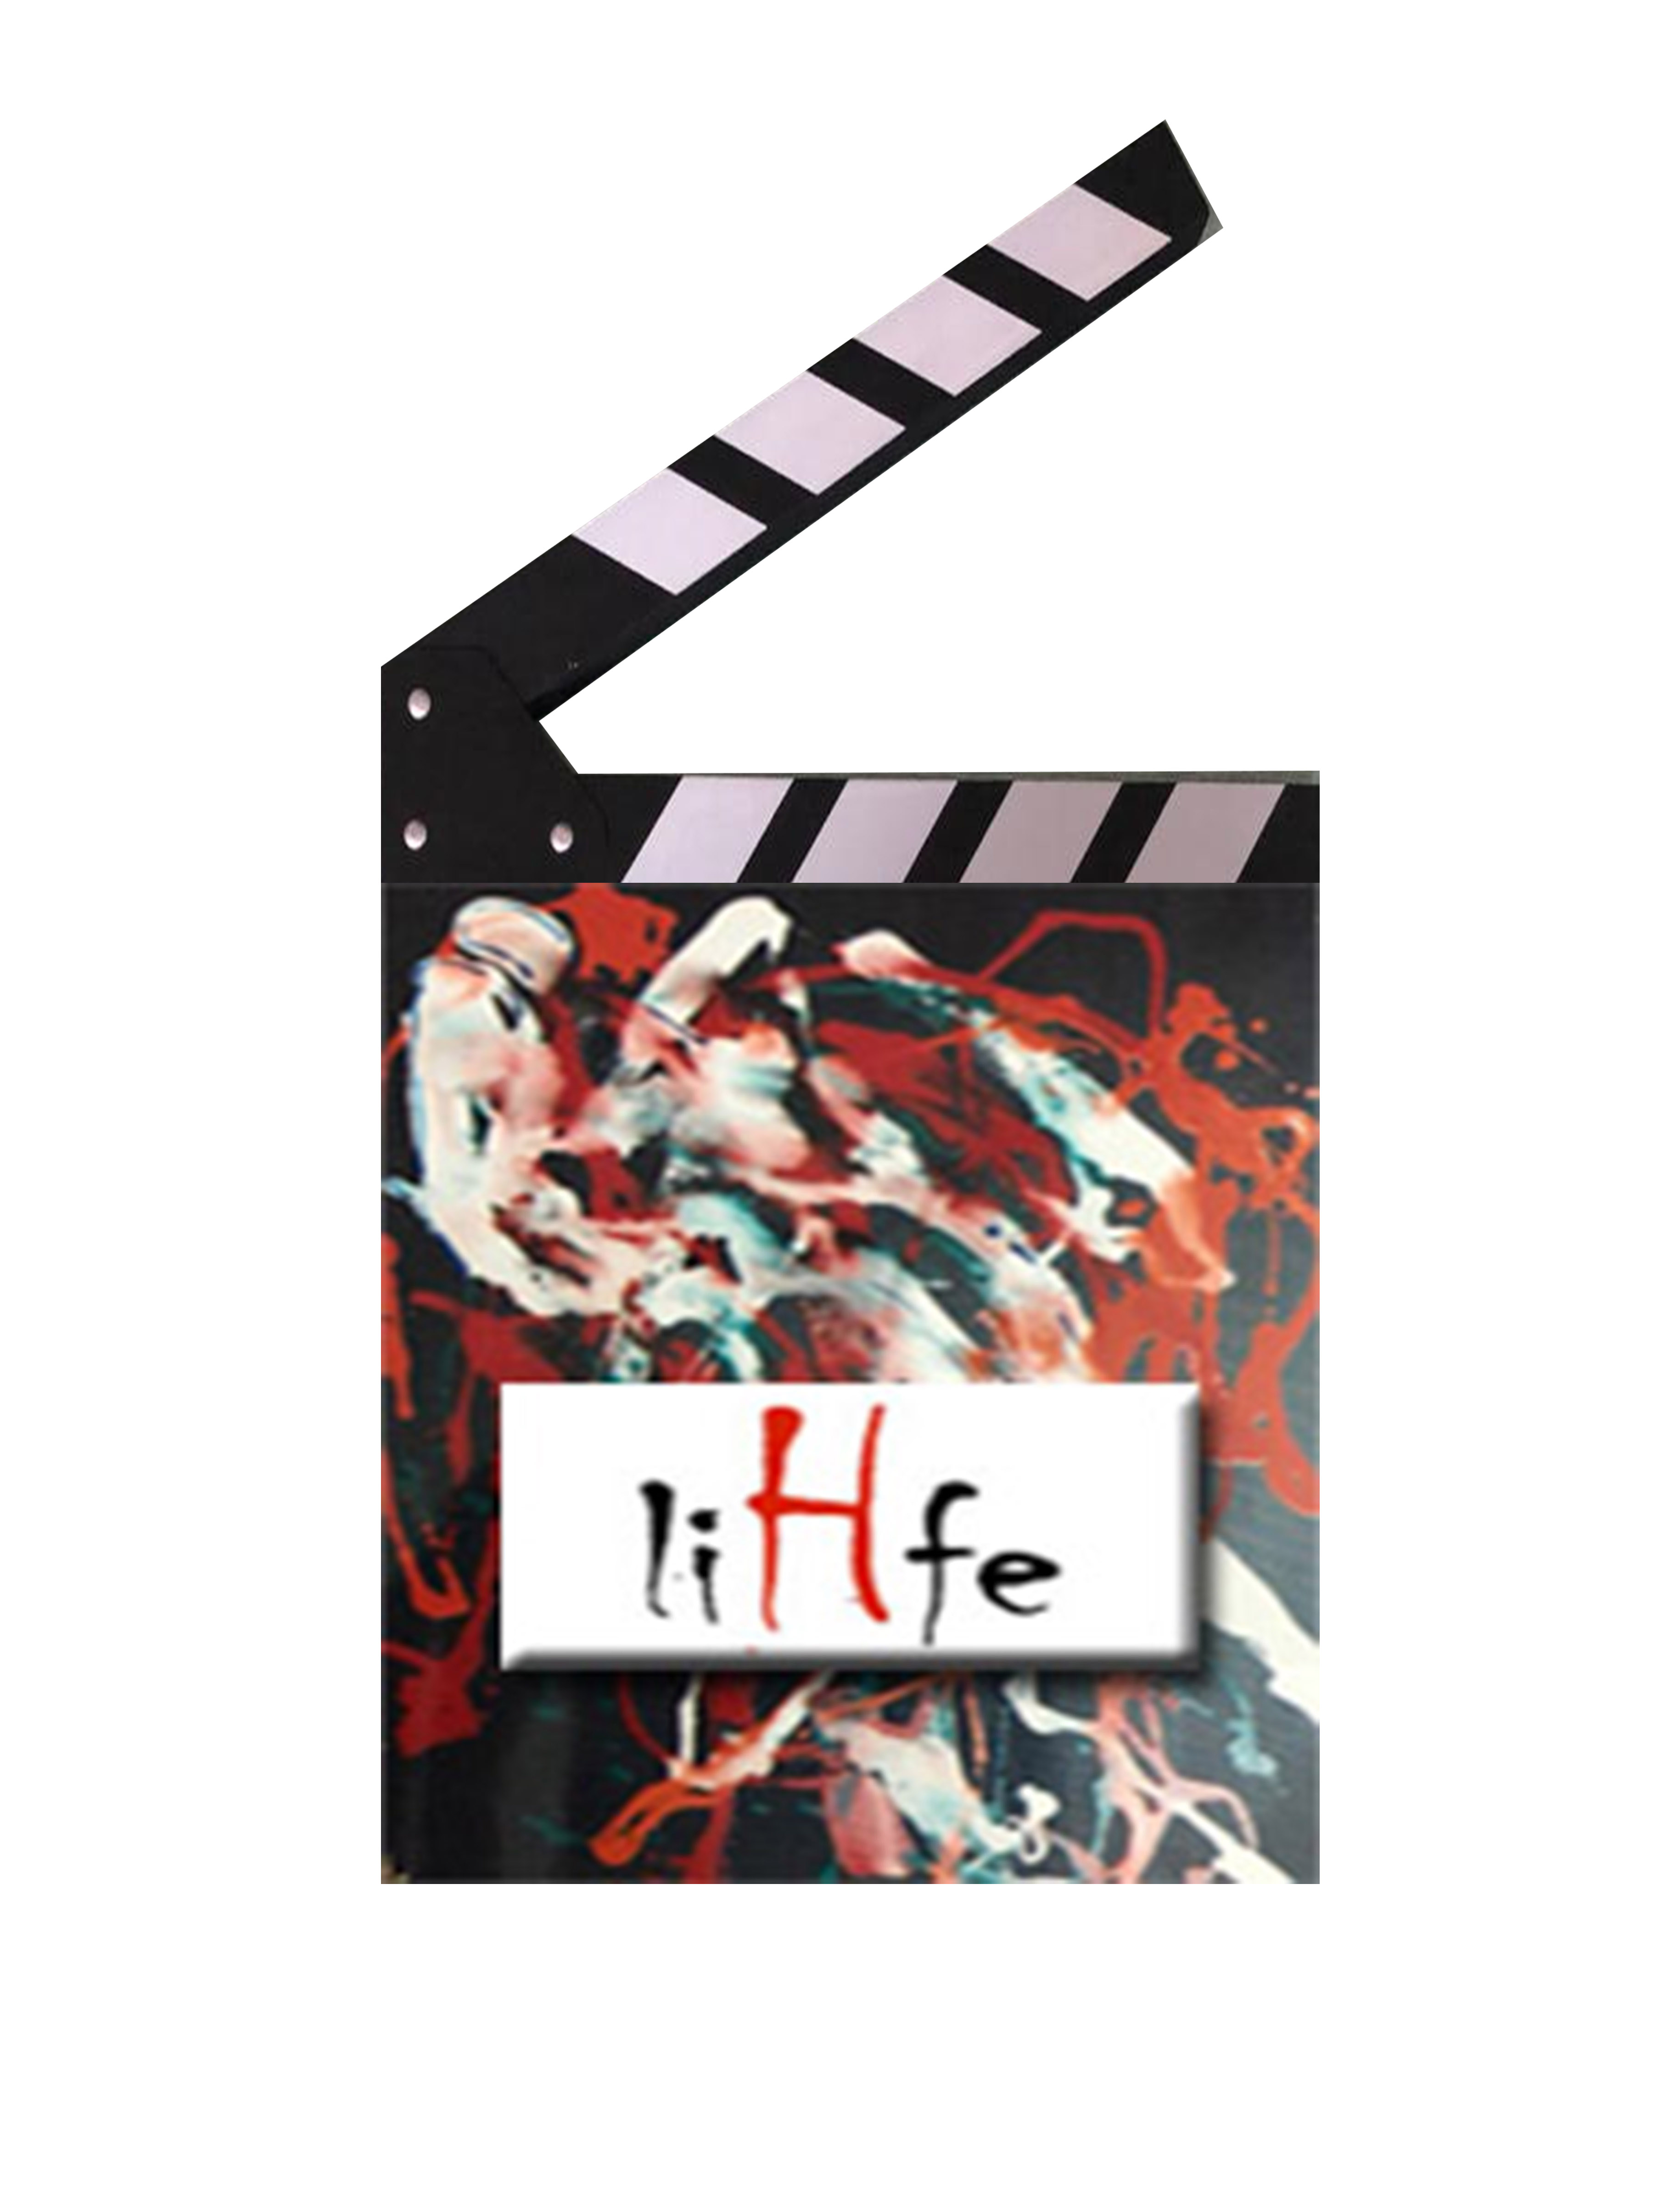 LOGIHQ International Happiness Film Festival & Exhibition  (liHfe-2021)